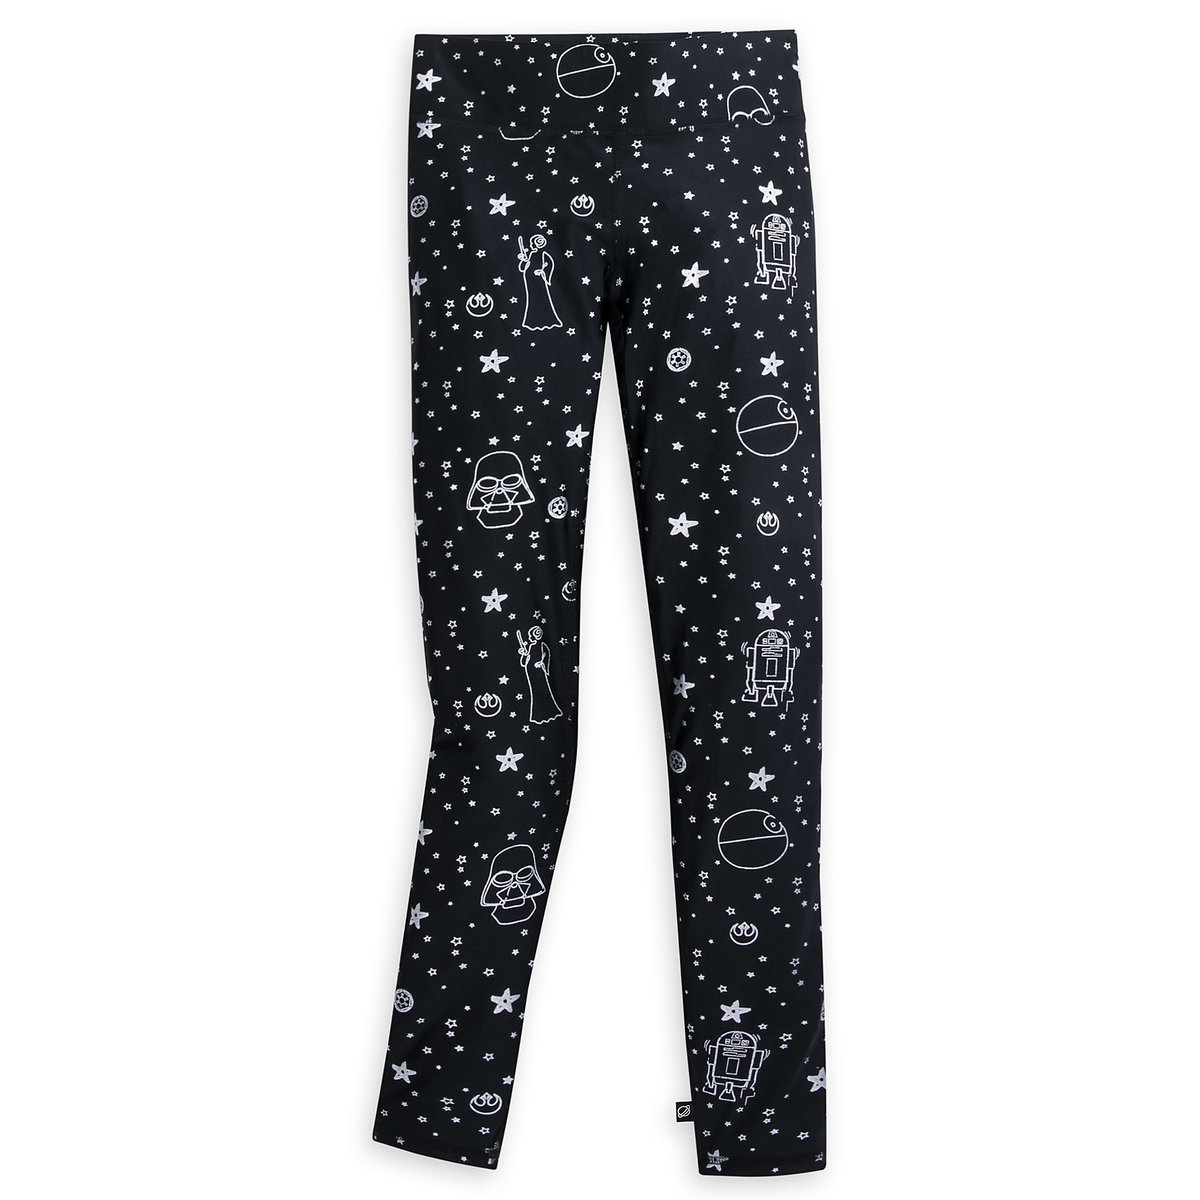 760ab90143878 Product Image of Star Wars Silver Foil Leggings for Women by Terez # 1